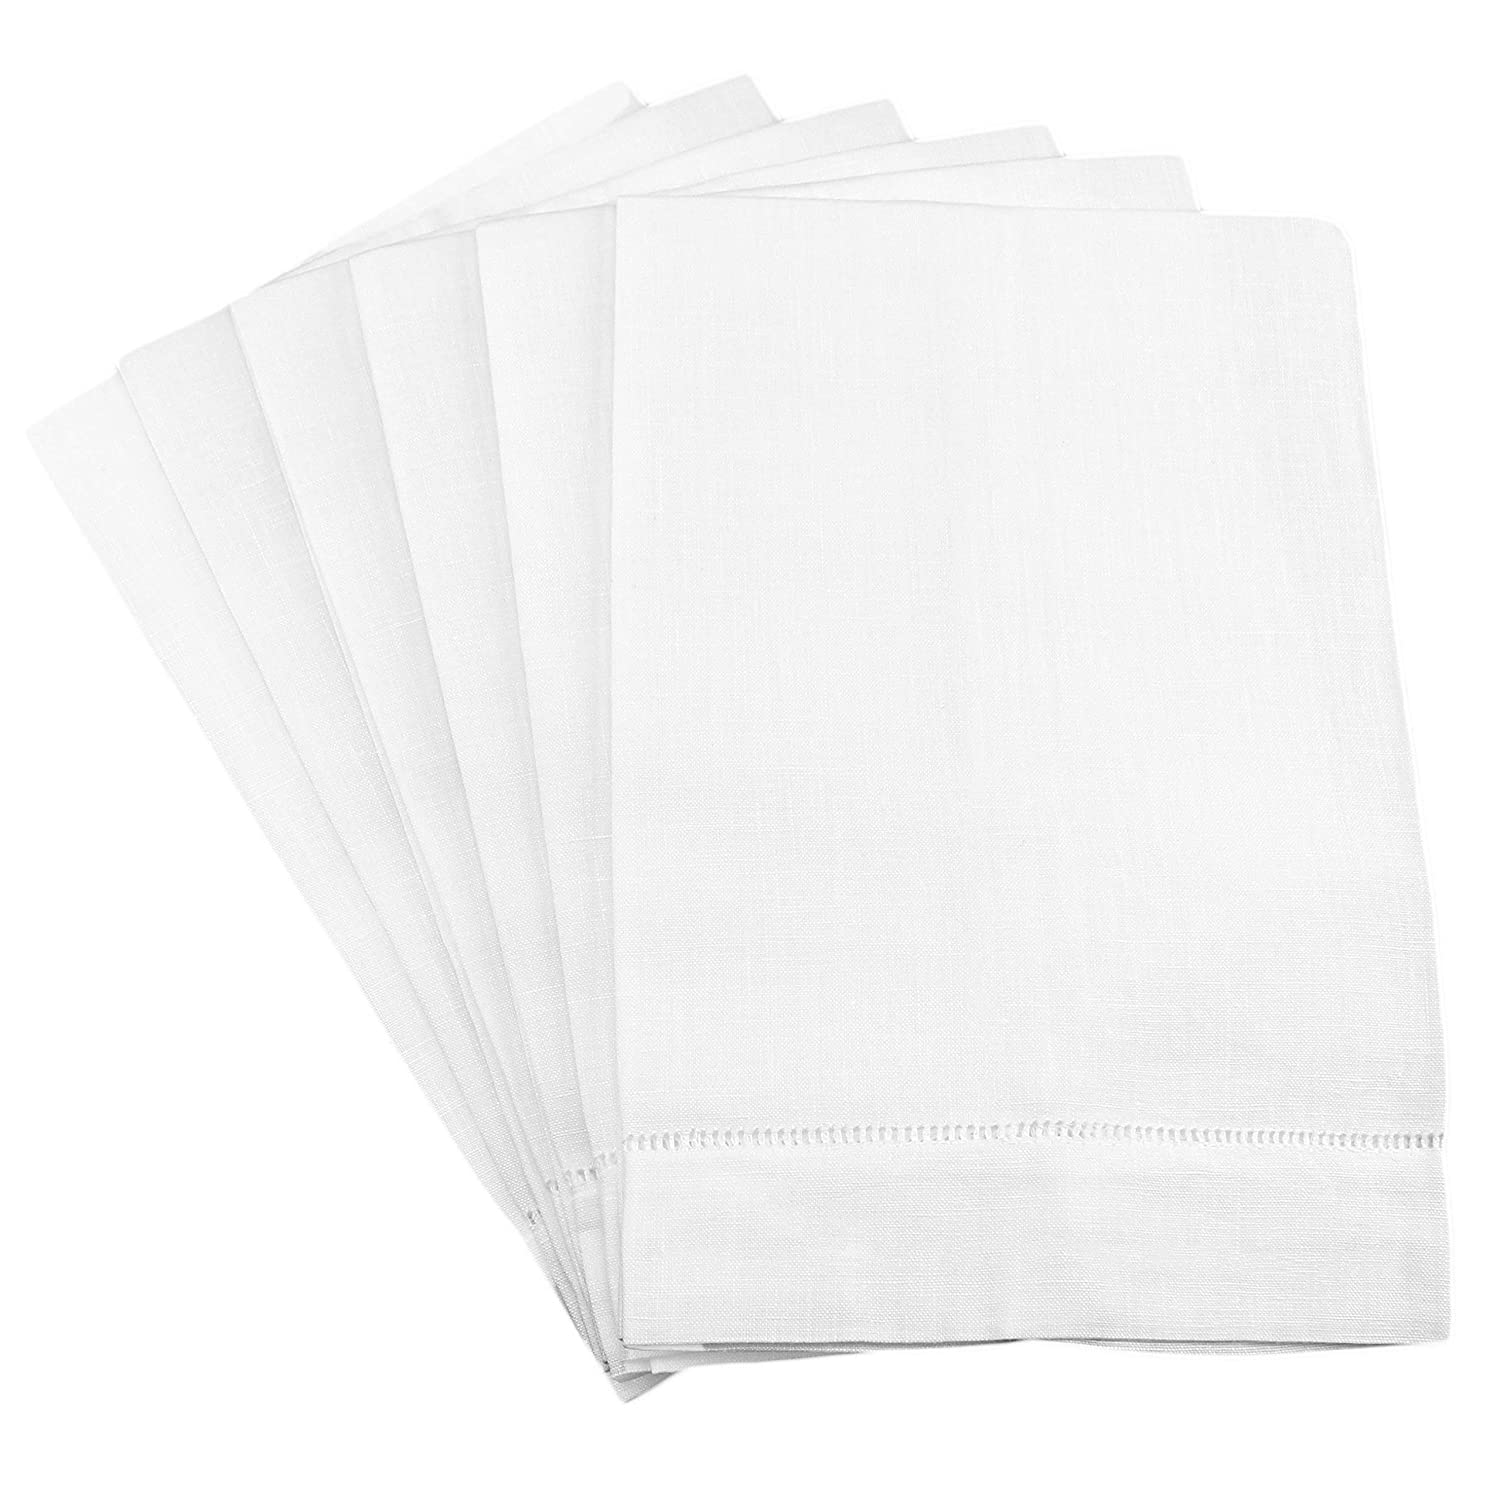 CleverDelights 6 Pack White Linen Hemstitched Hand Towels - 14